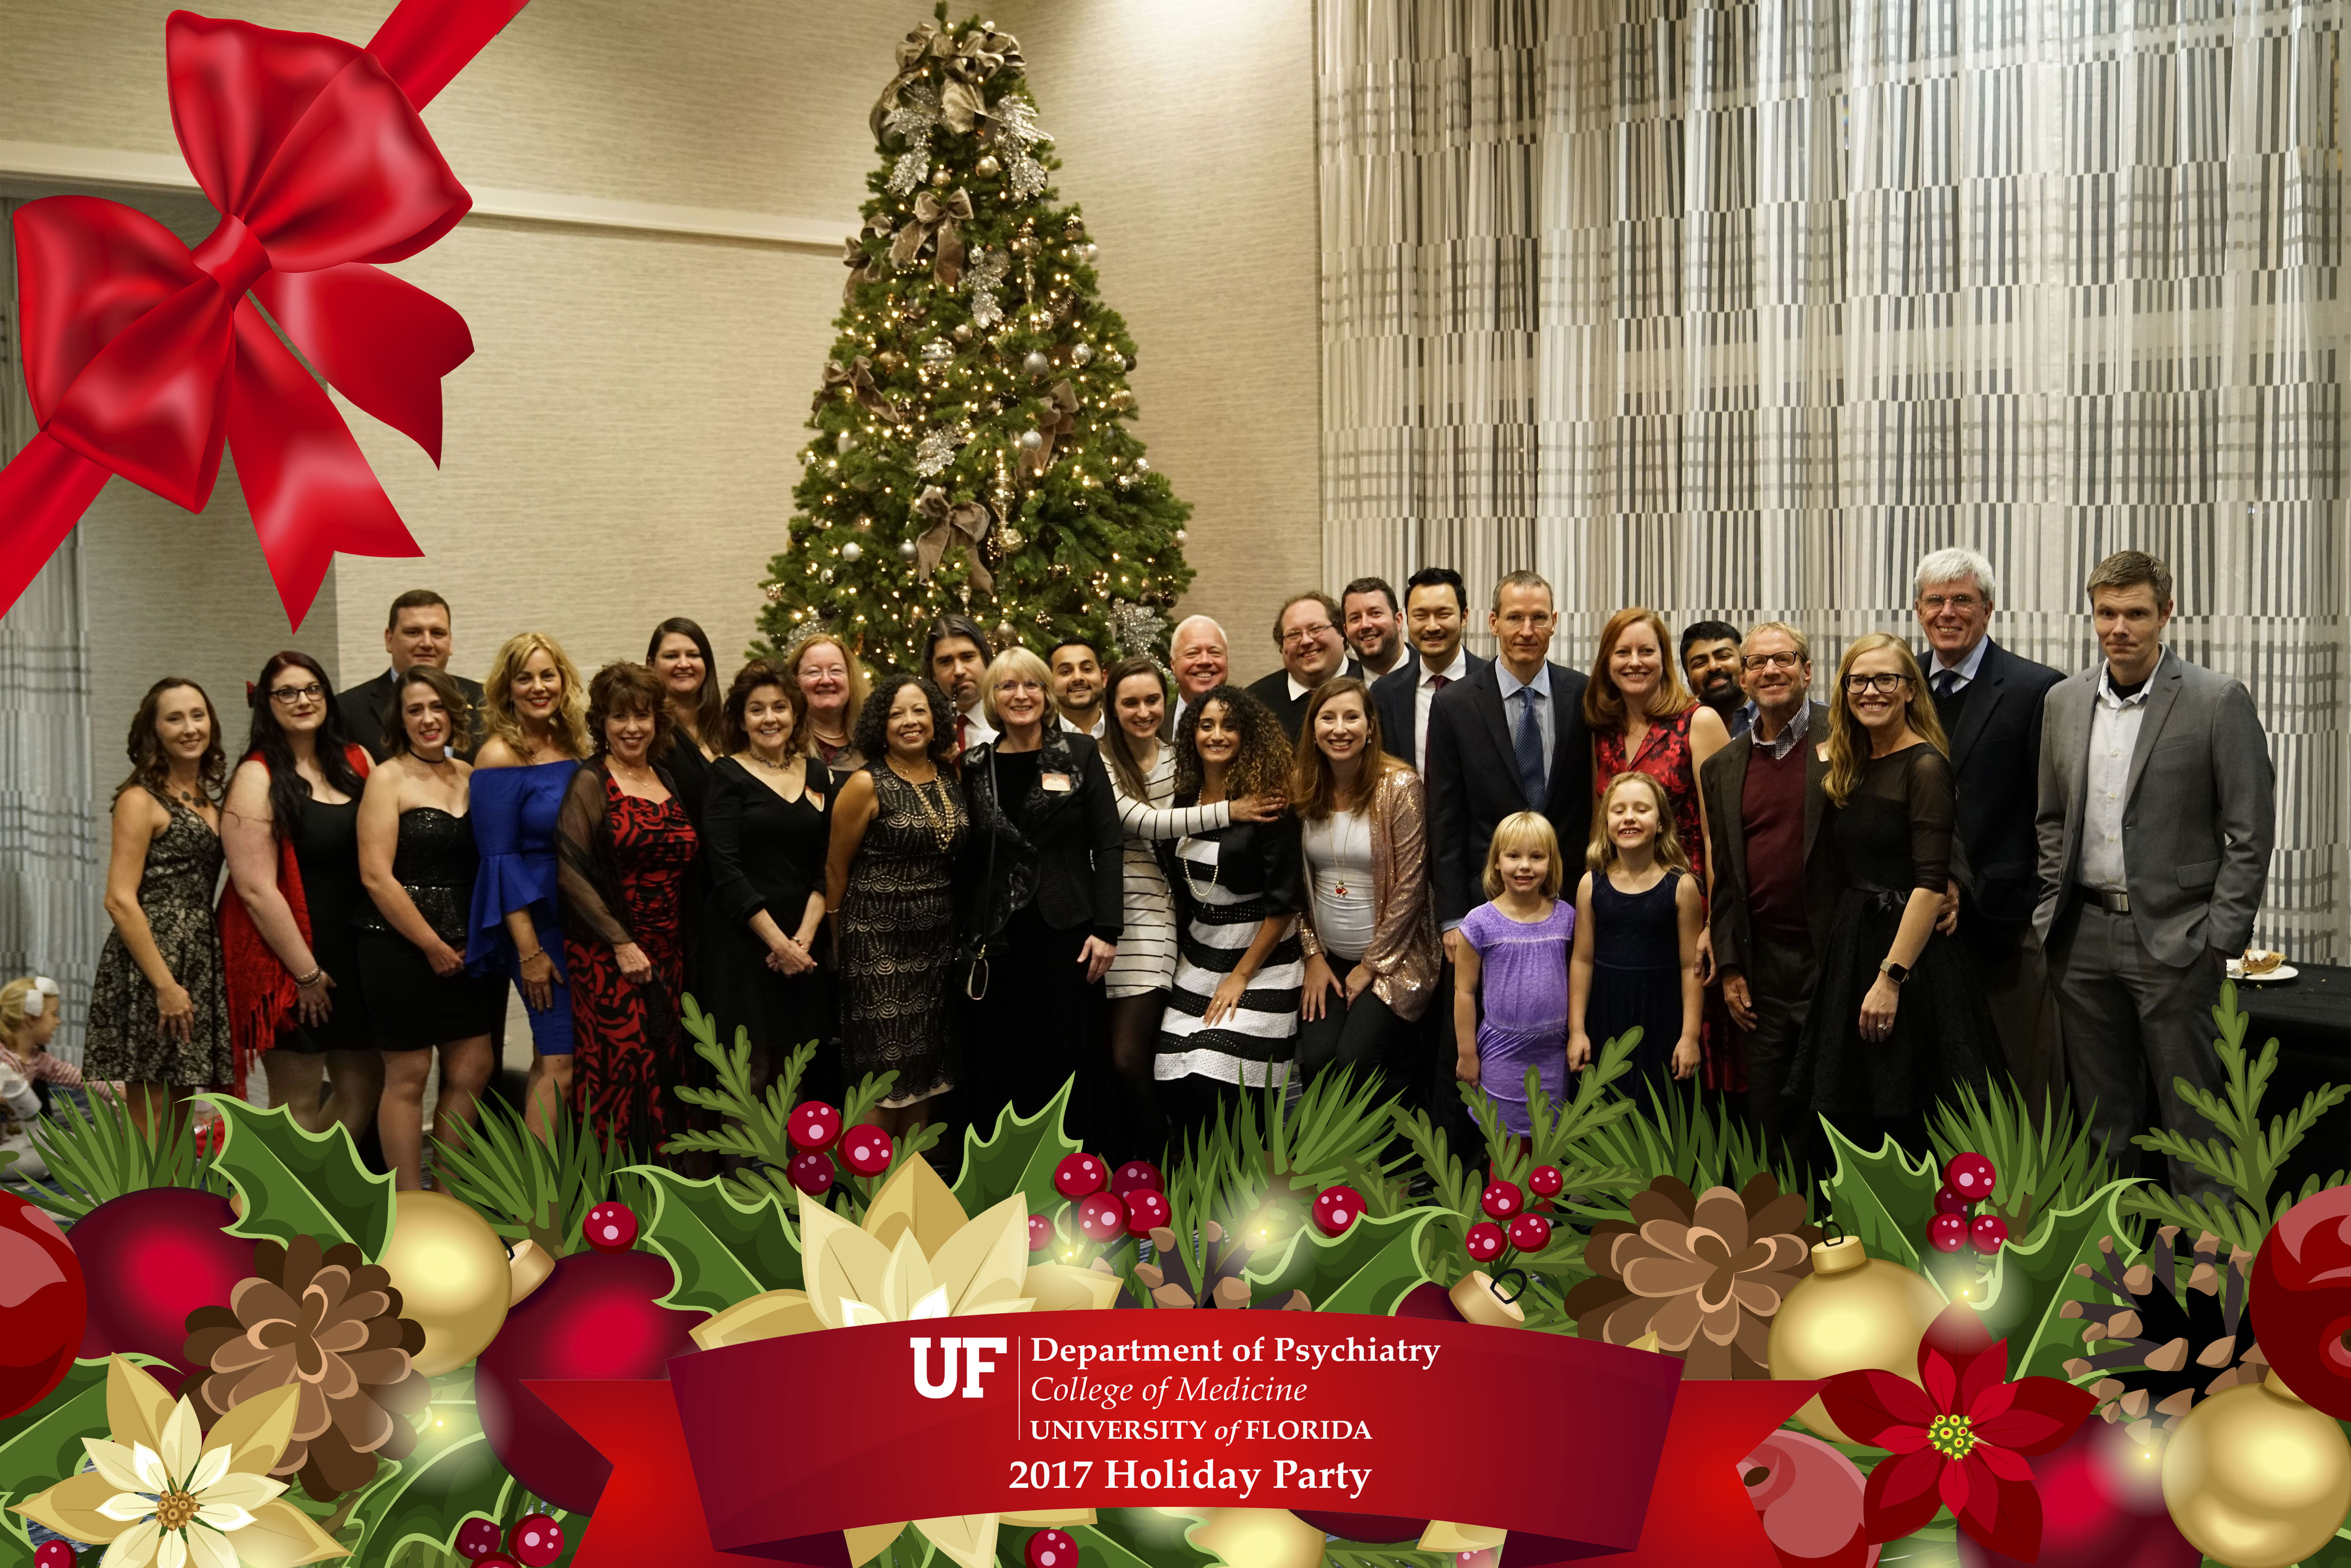 Christmas Holidays 2020 Ufl Happy Holidays from the Department of Psychiatry! » Department of